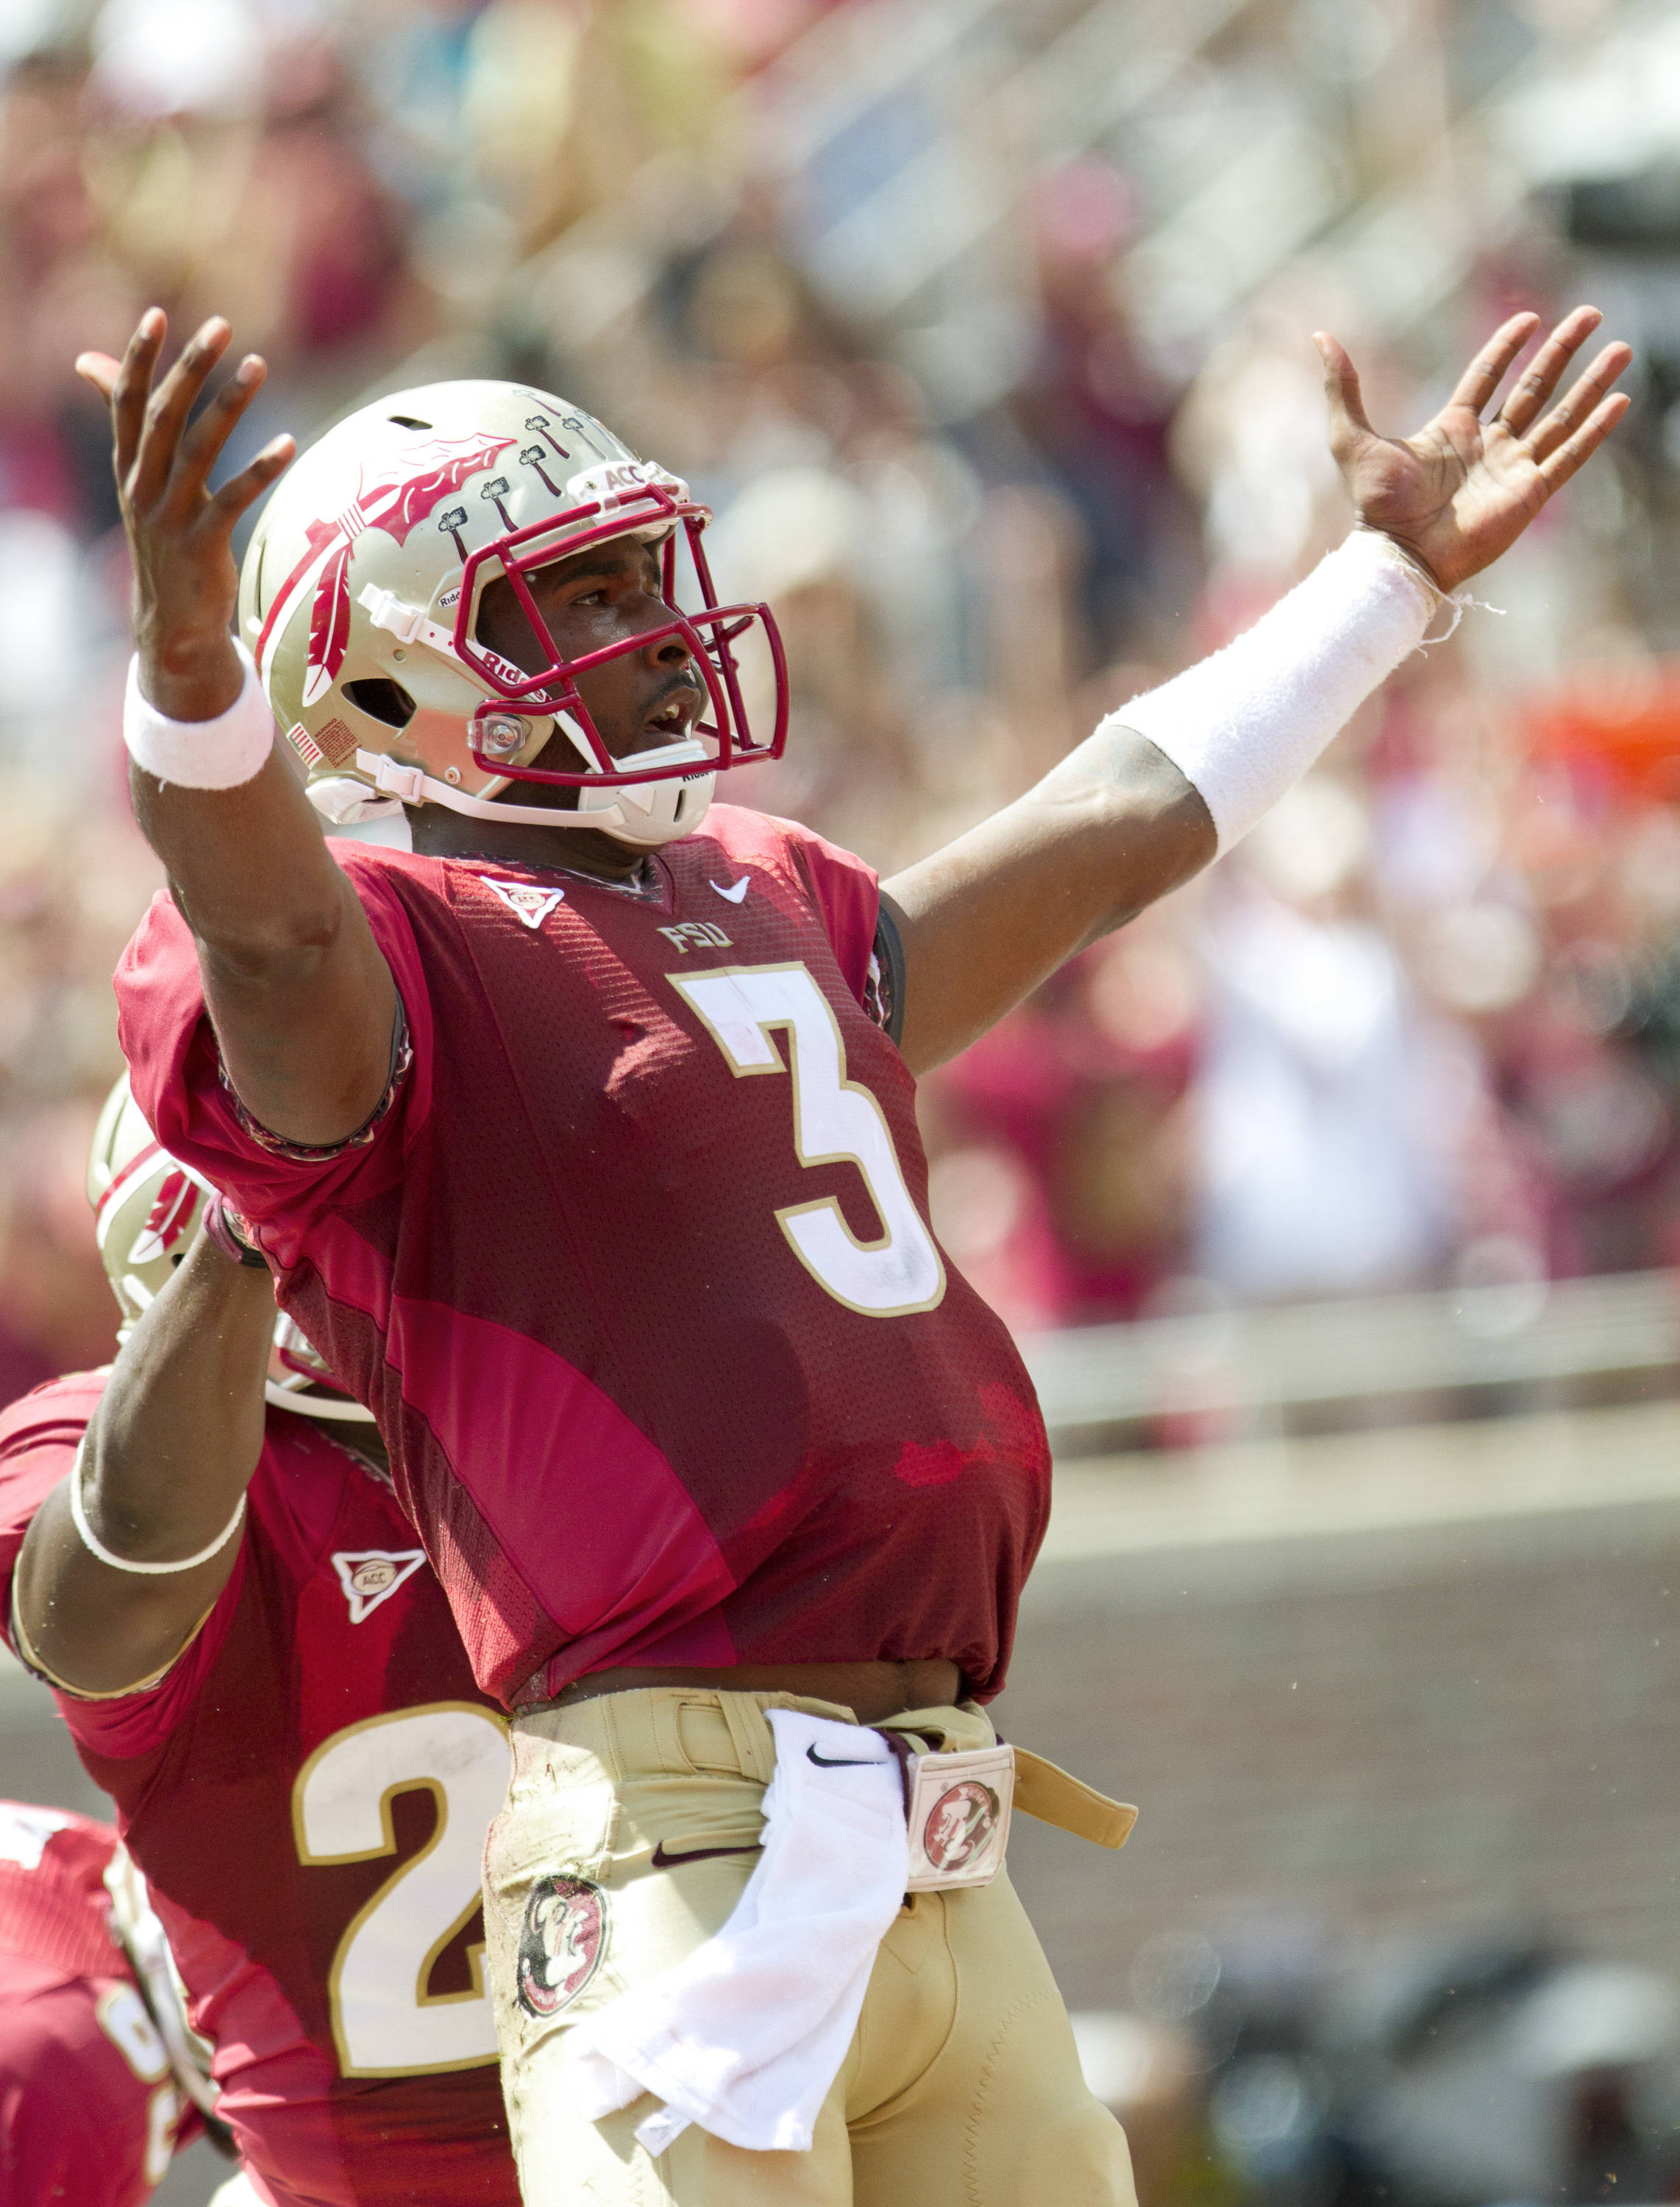 EJ Manuel (3) celebrates after scoring the first touchdown of the game.